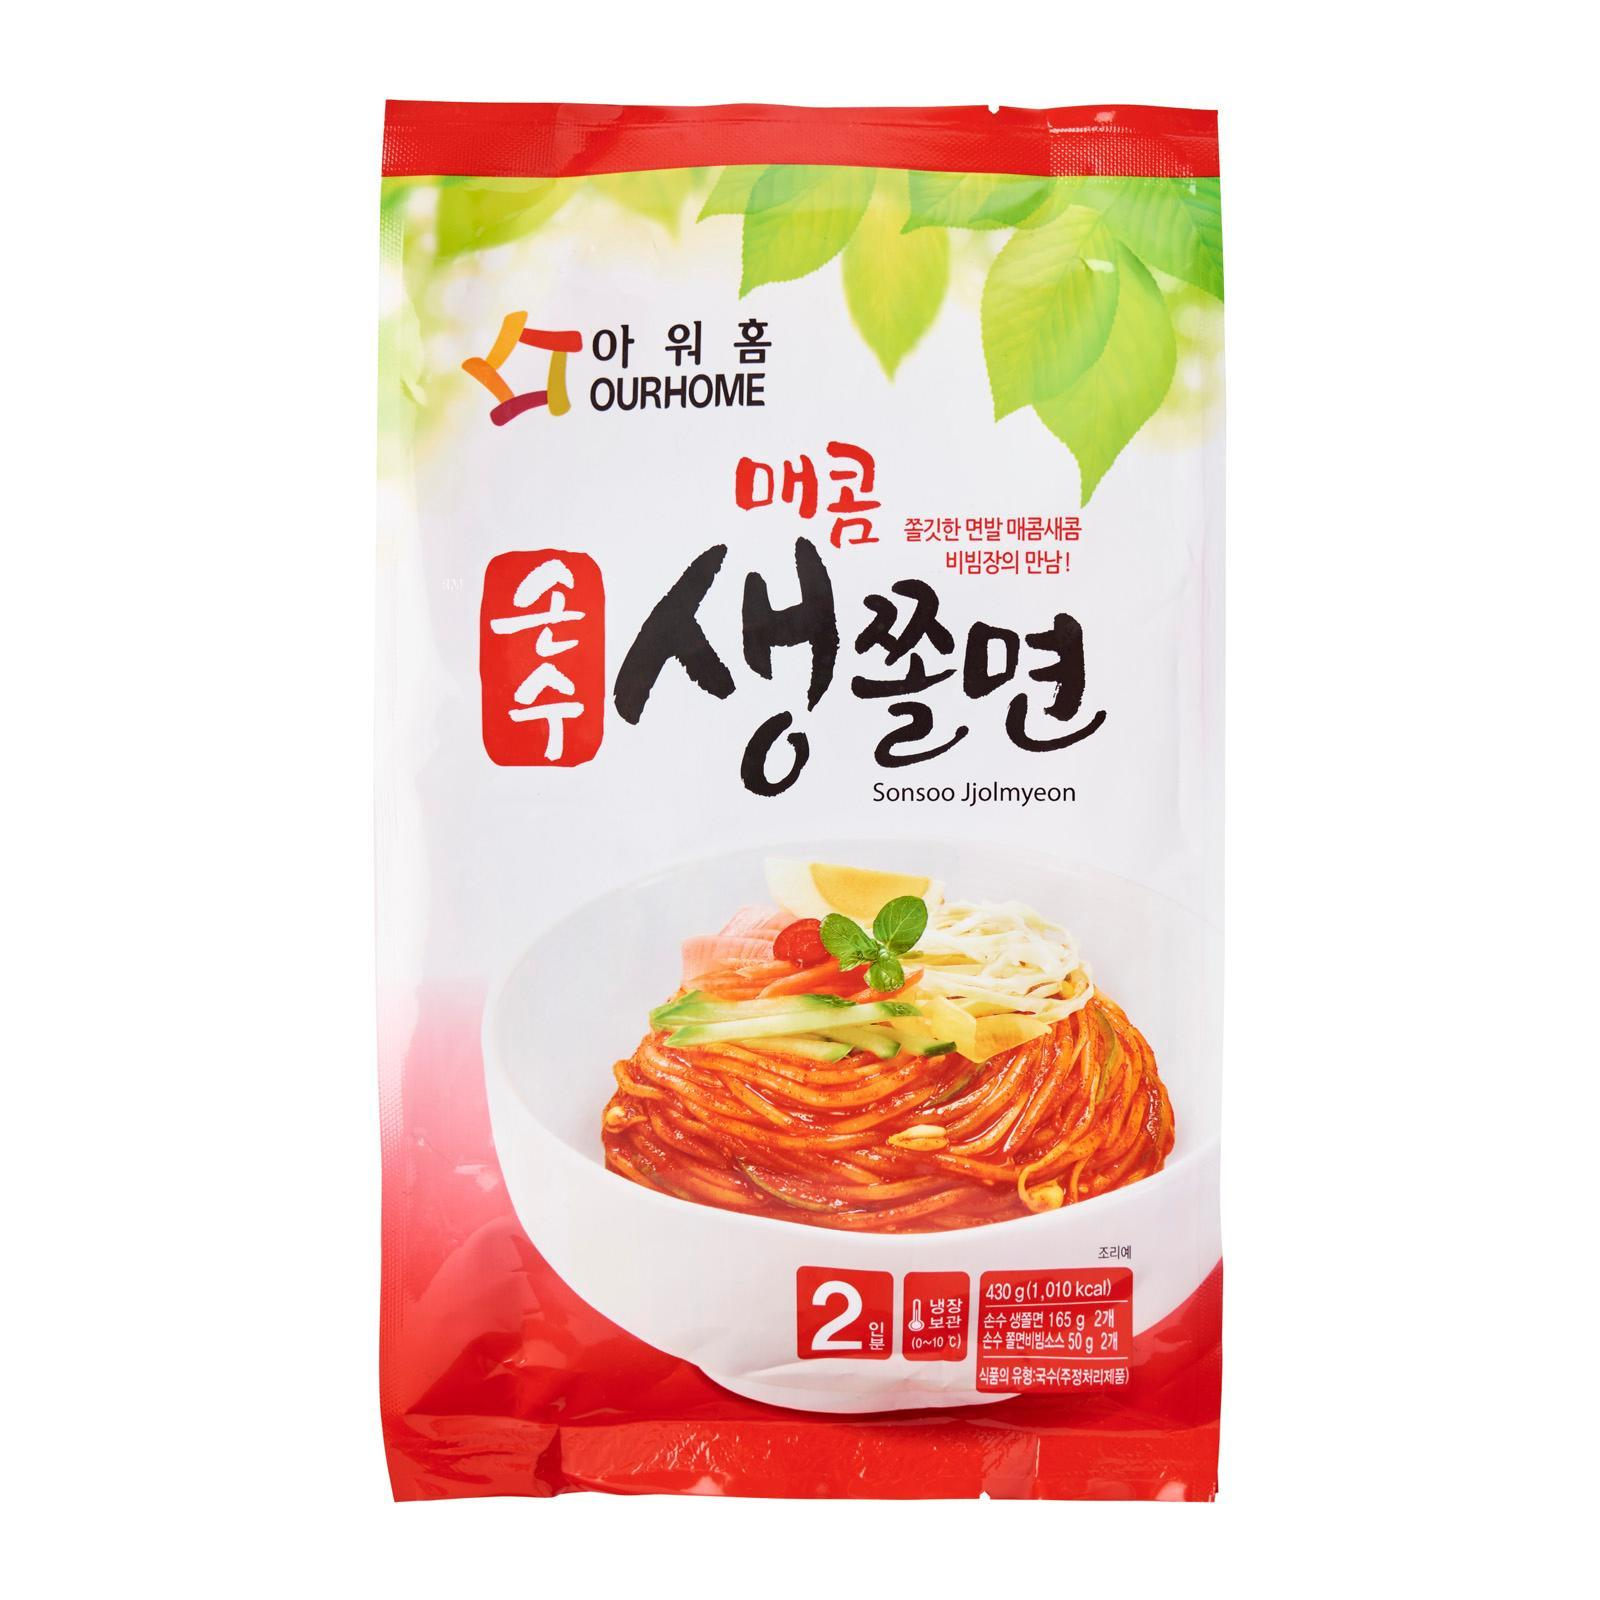 Ourhome Korean Style Spicy Cold Chewy Noodles - Frozen -Korea